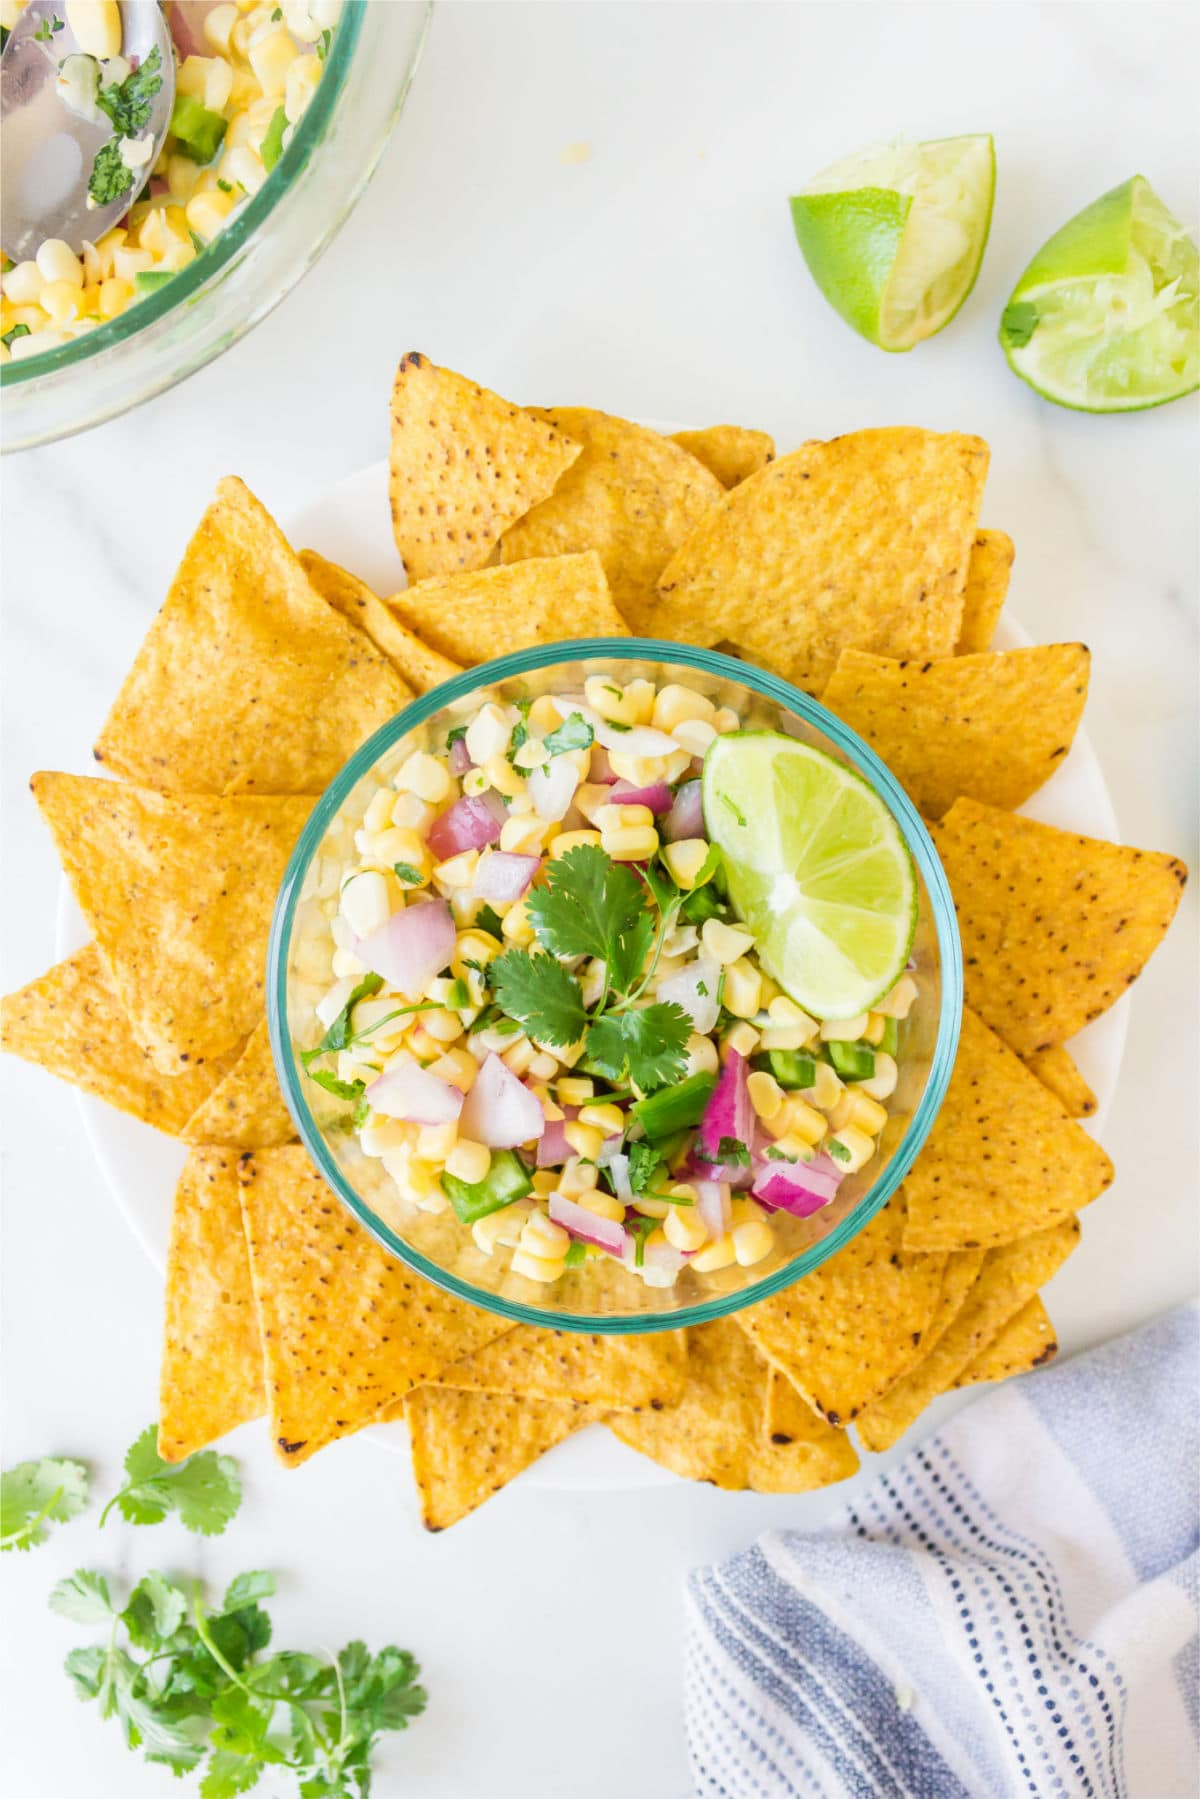 Dish of fresh corn salsa surrounded by tortilla chips.